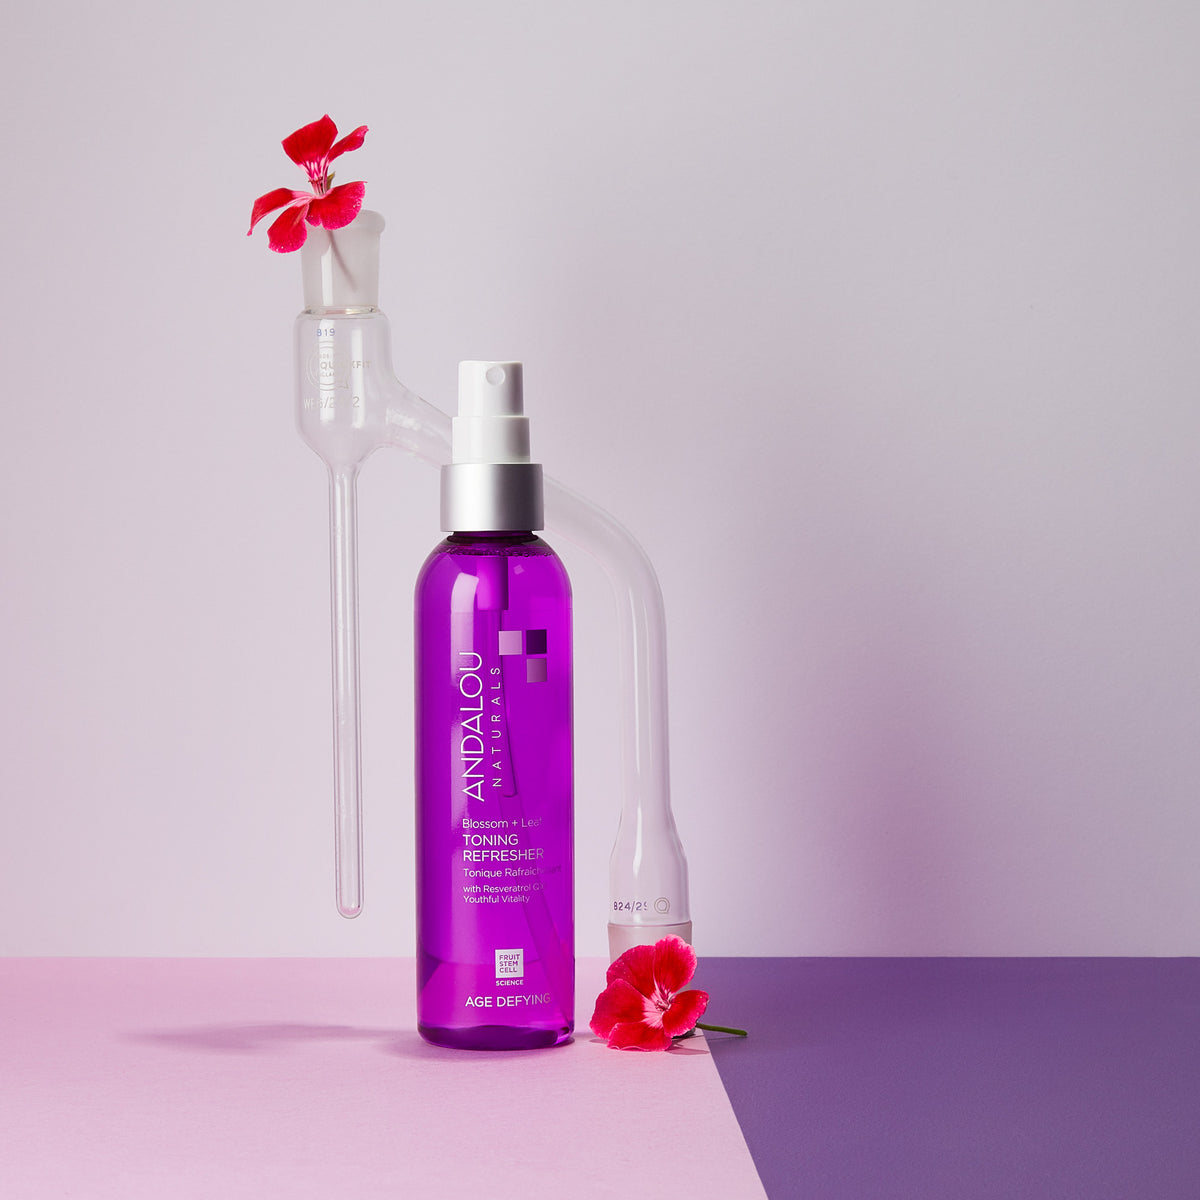 Age Defying Blossom + Leaf Toning Refresher - Andalou Naturals US